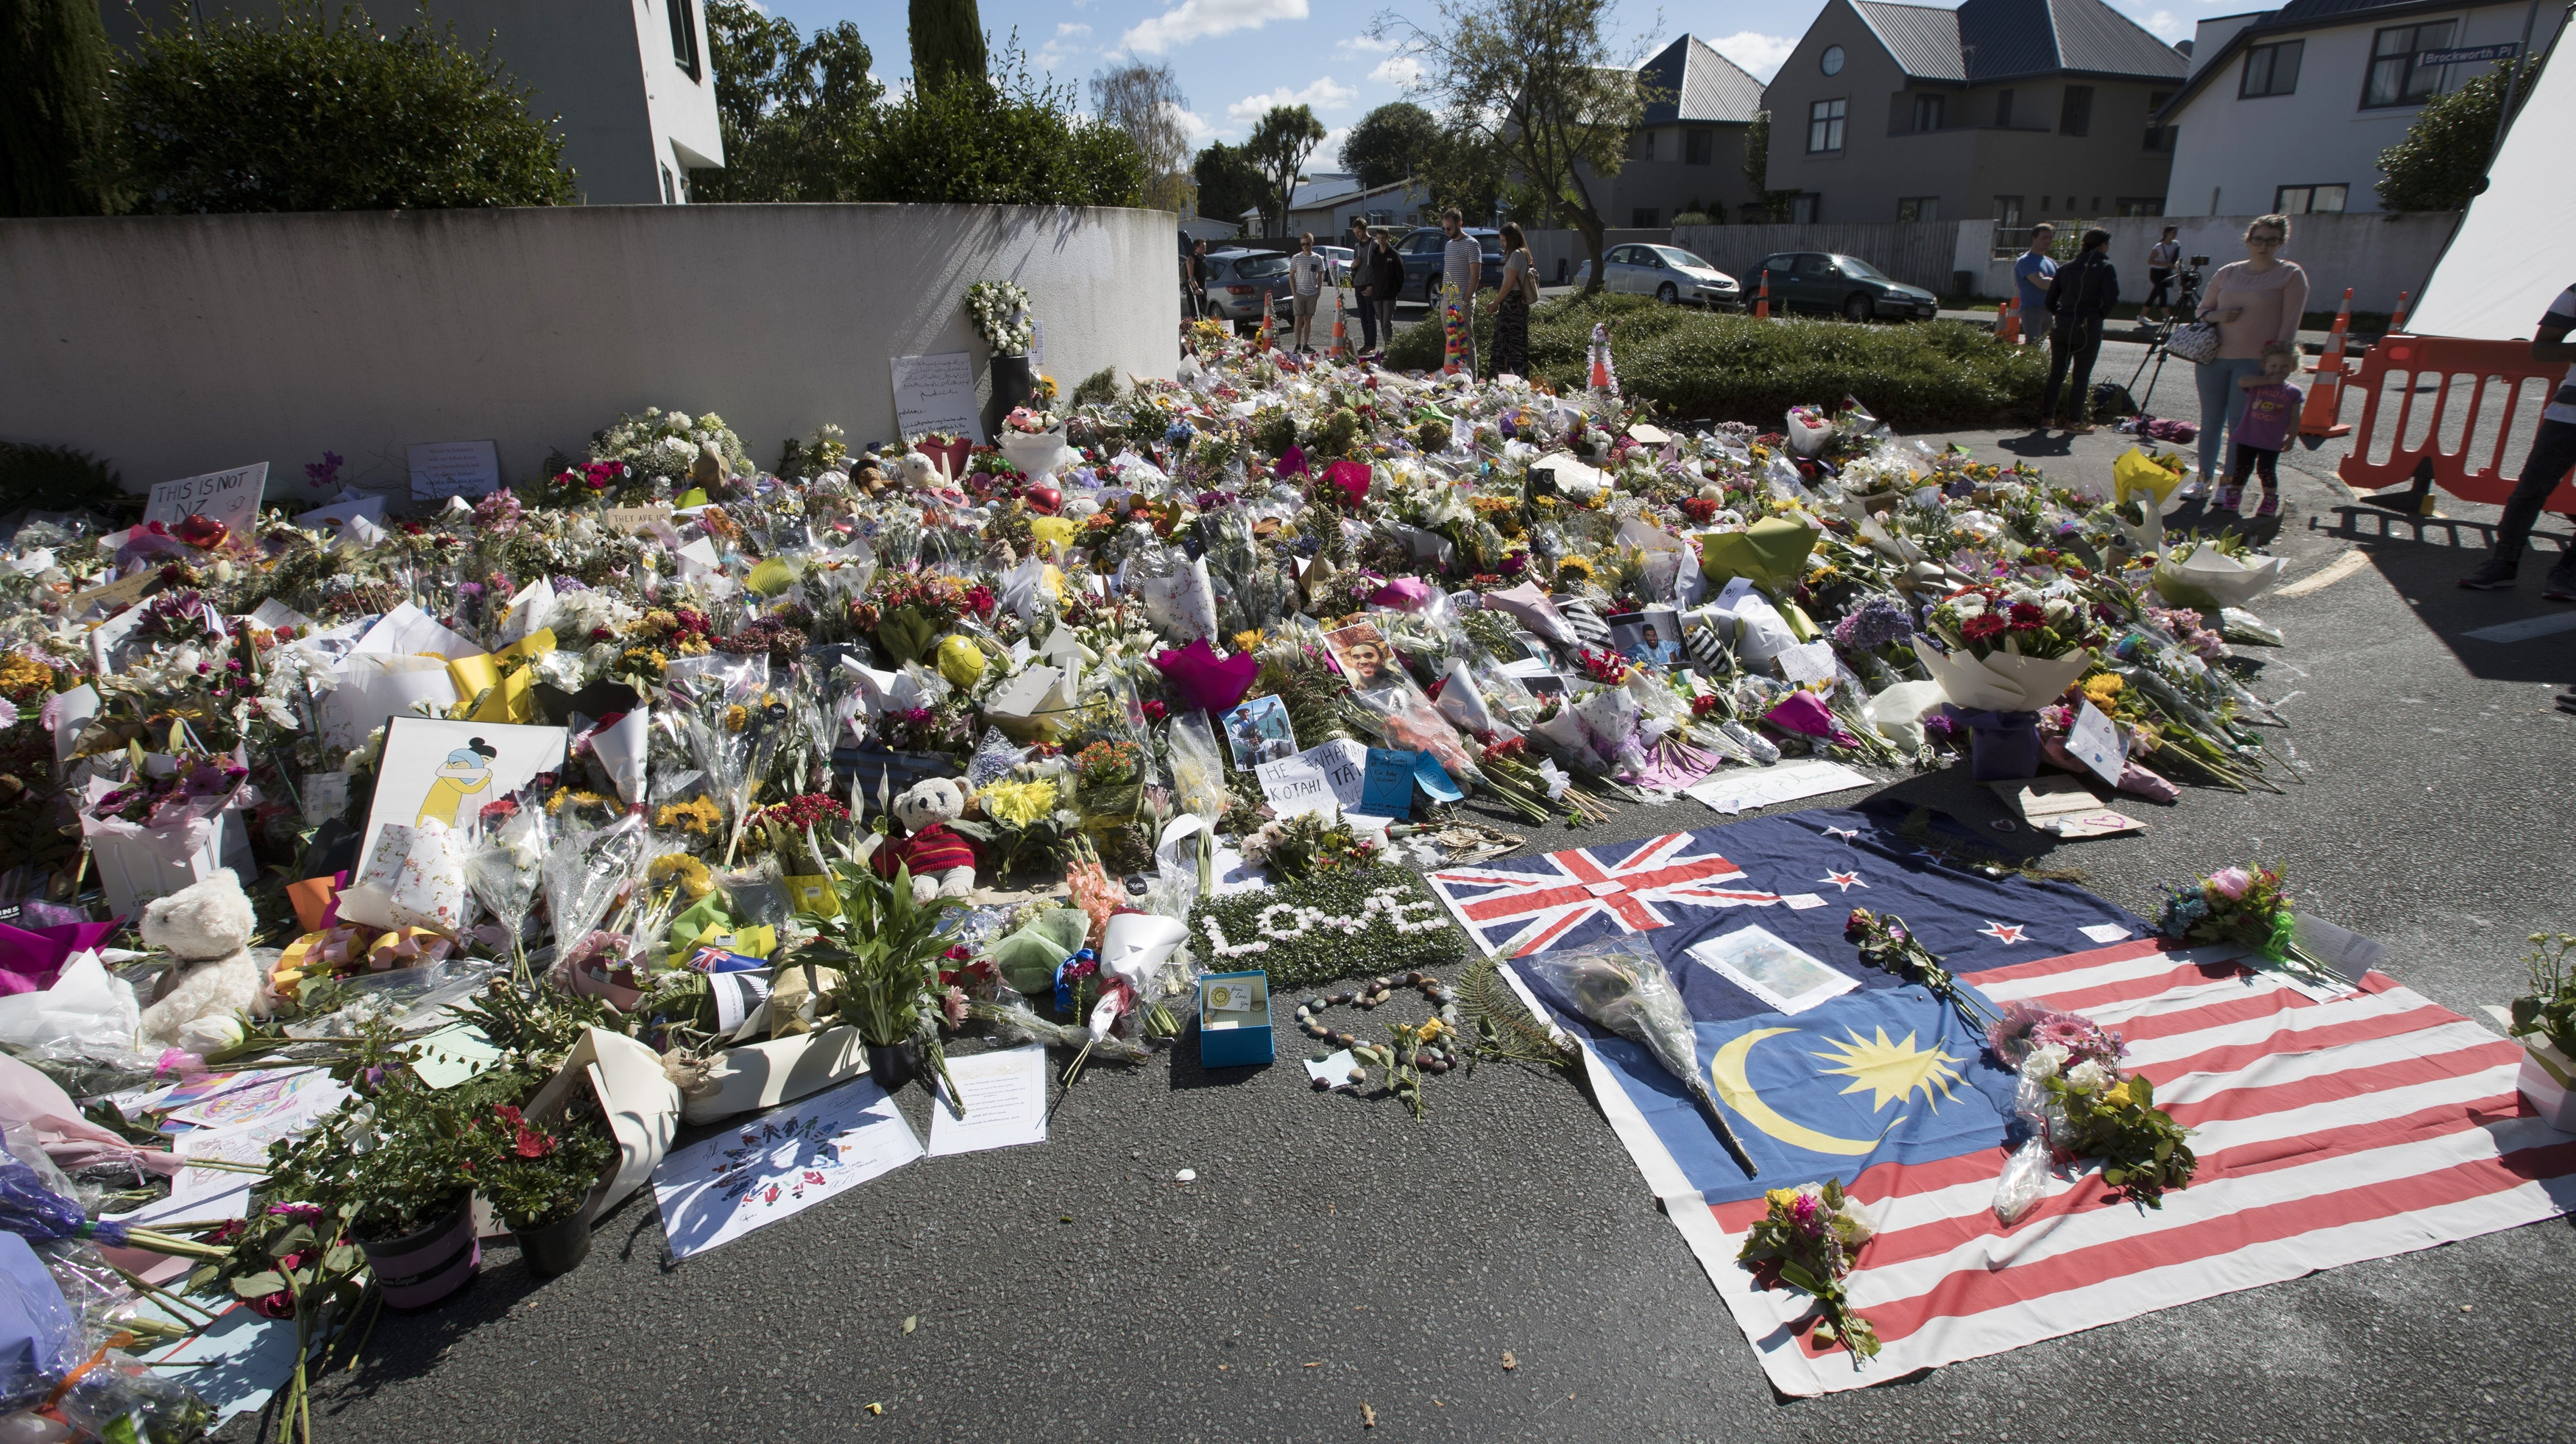 Christchurch Facebook: 'No Facebook Users Reported Christchurch Massacre During